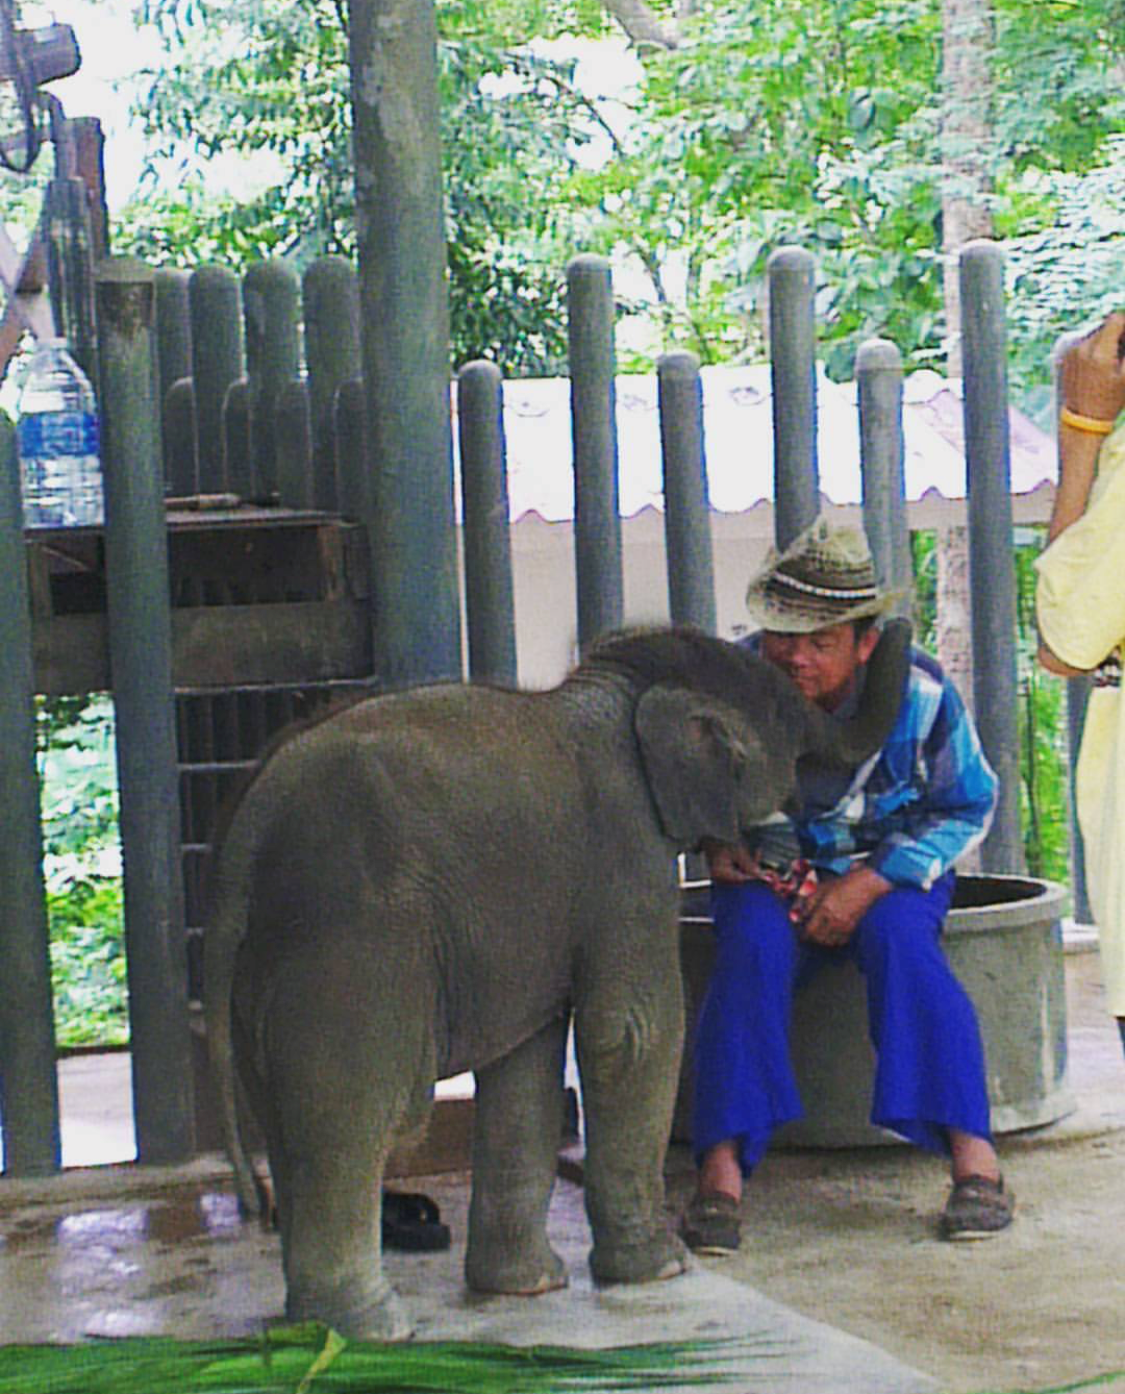 Spend time with White Elephants in natural at Chiang Mai Elephants.